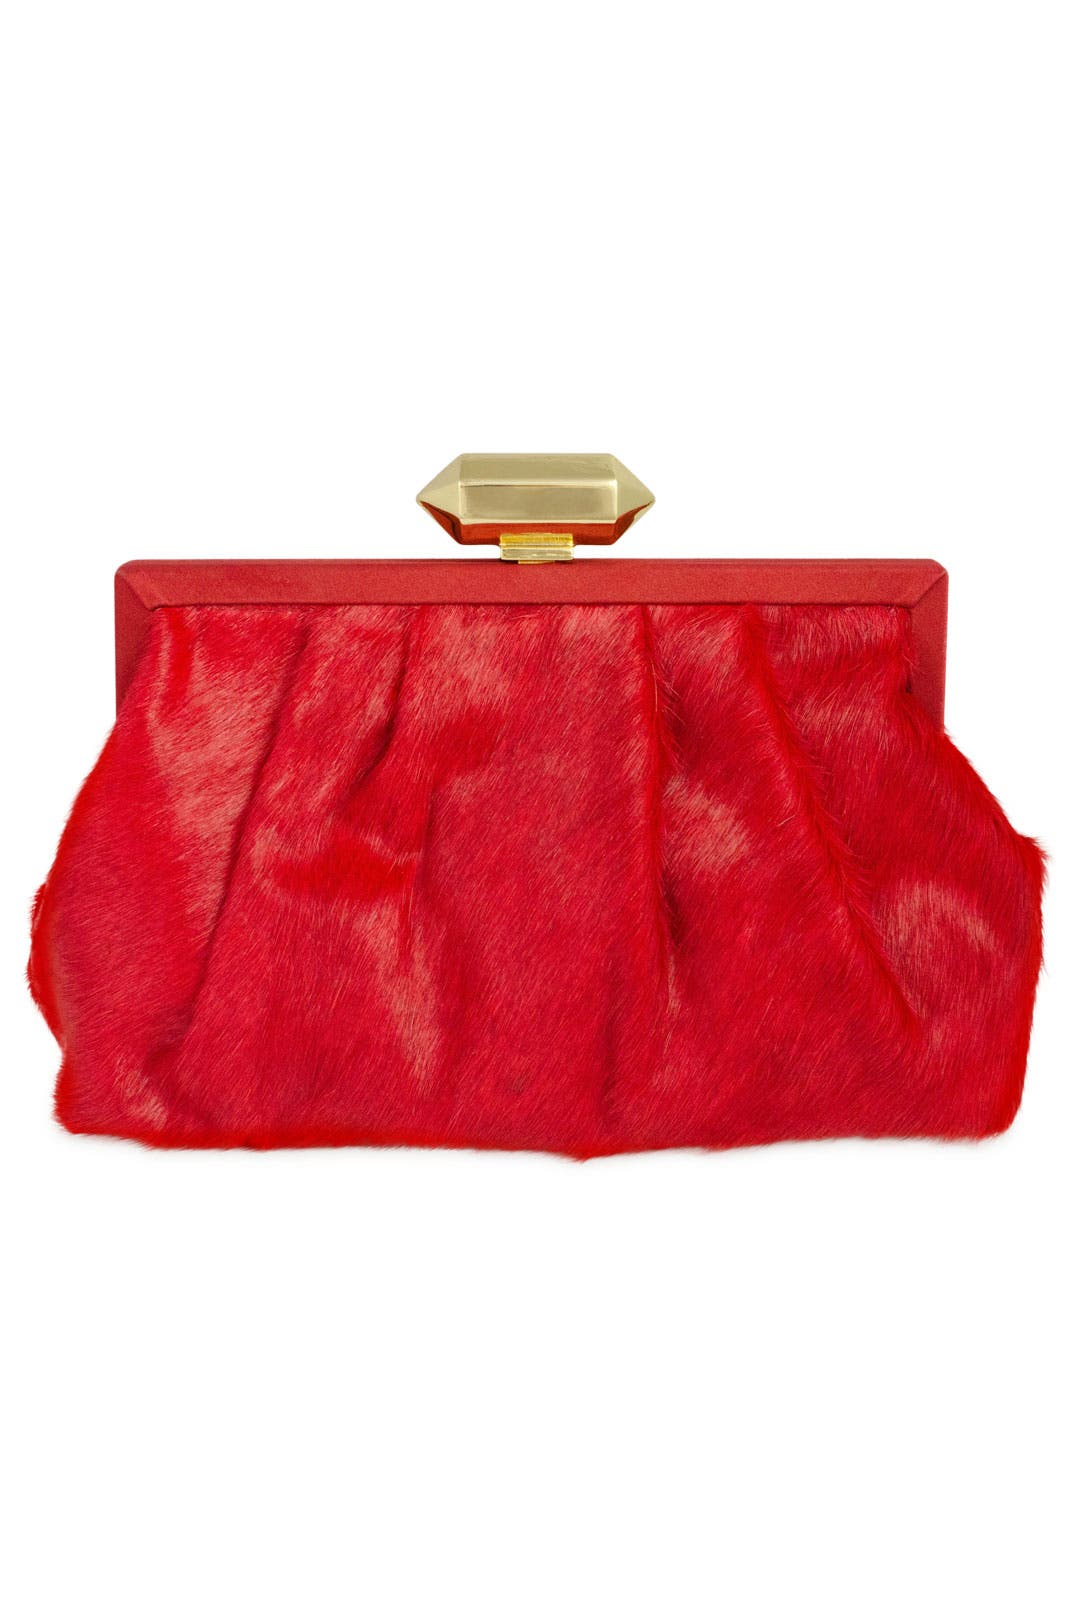 Crimson Miriam Pony Clutch by Badgley Mischka Handbags